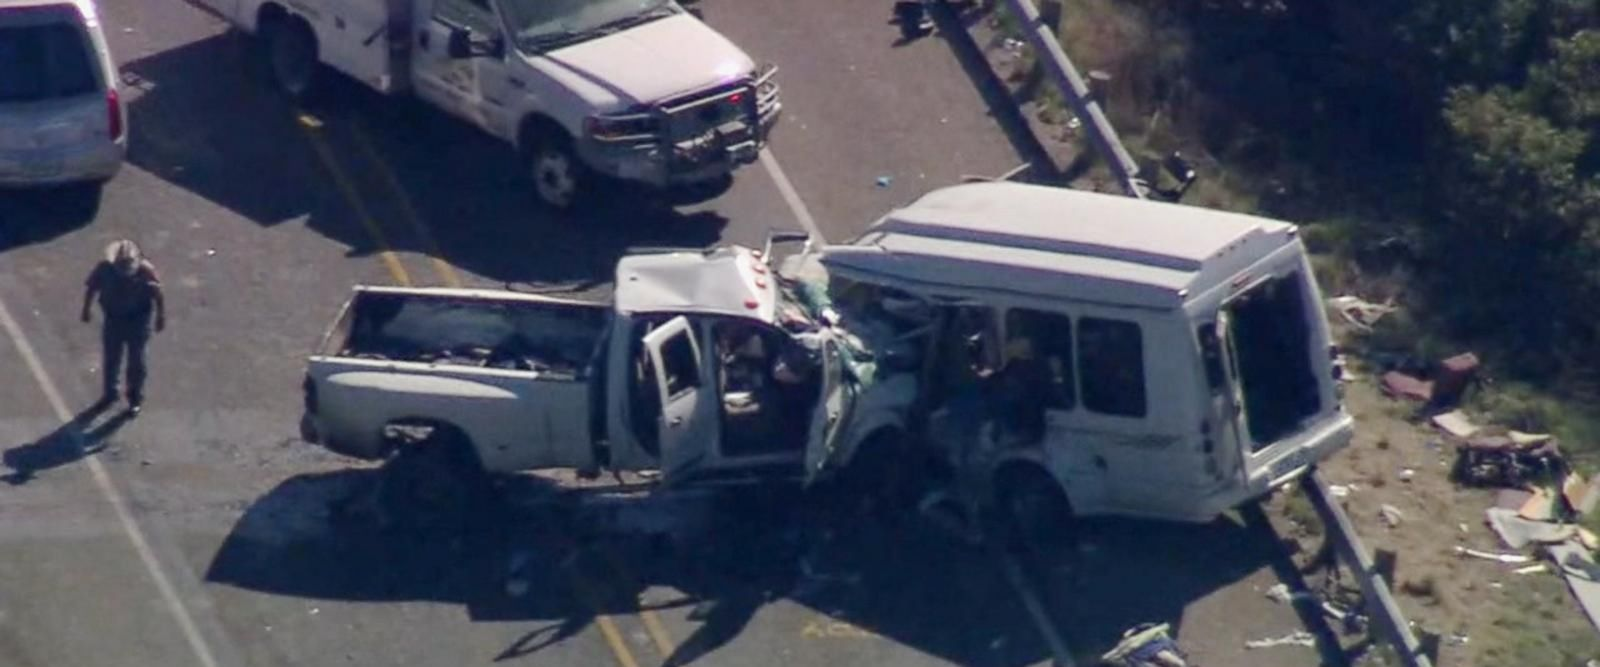 VIDEO: 13 members of church group killed in head-on collision in Texas